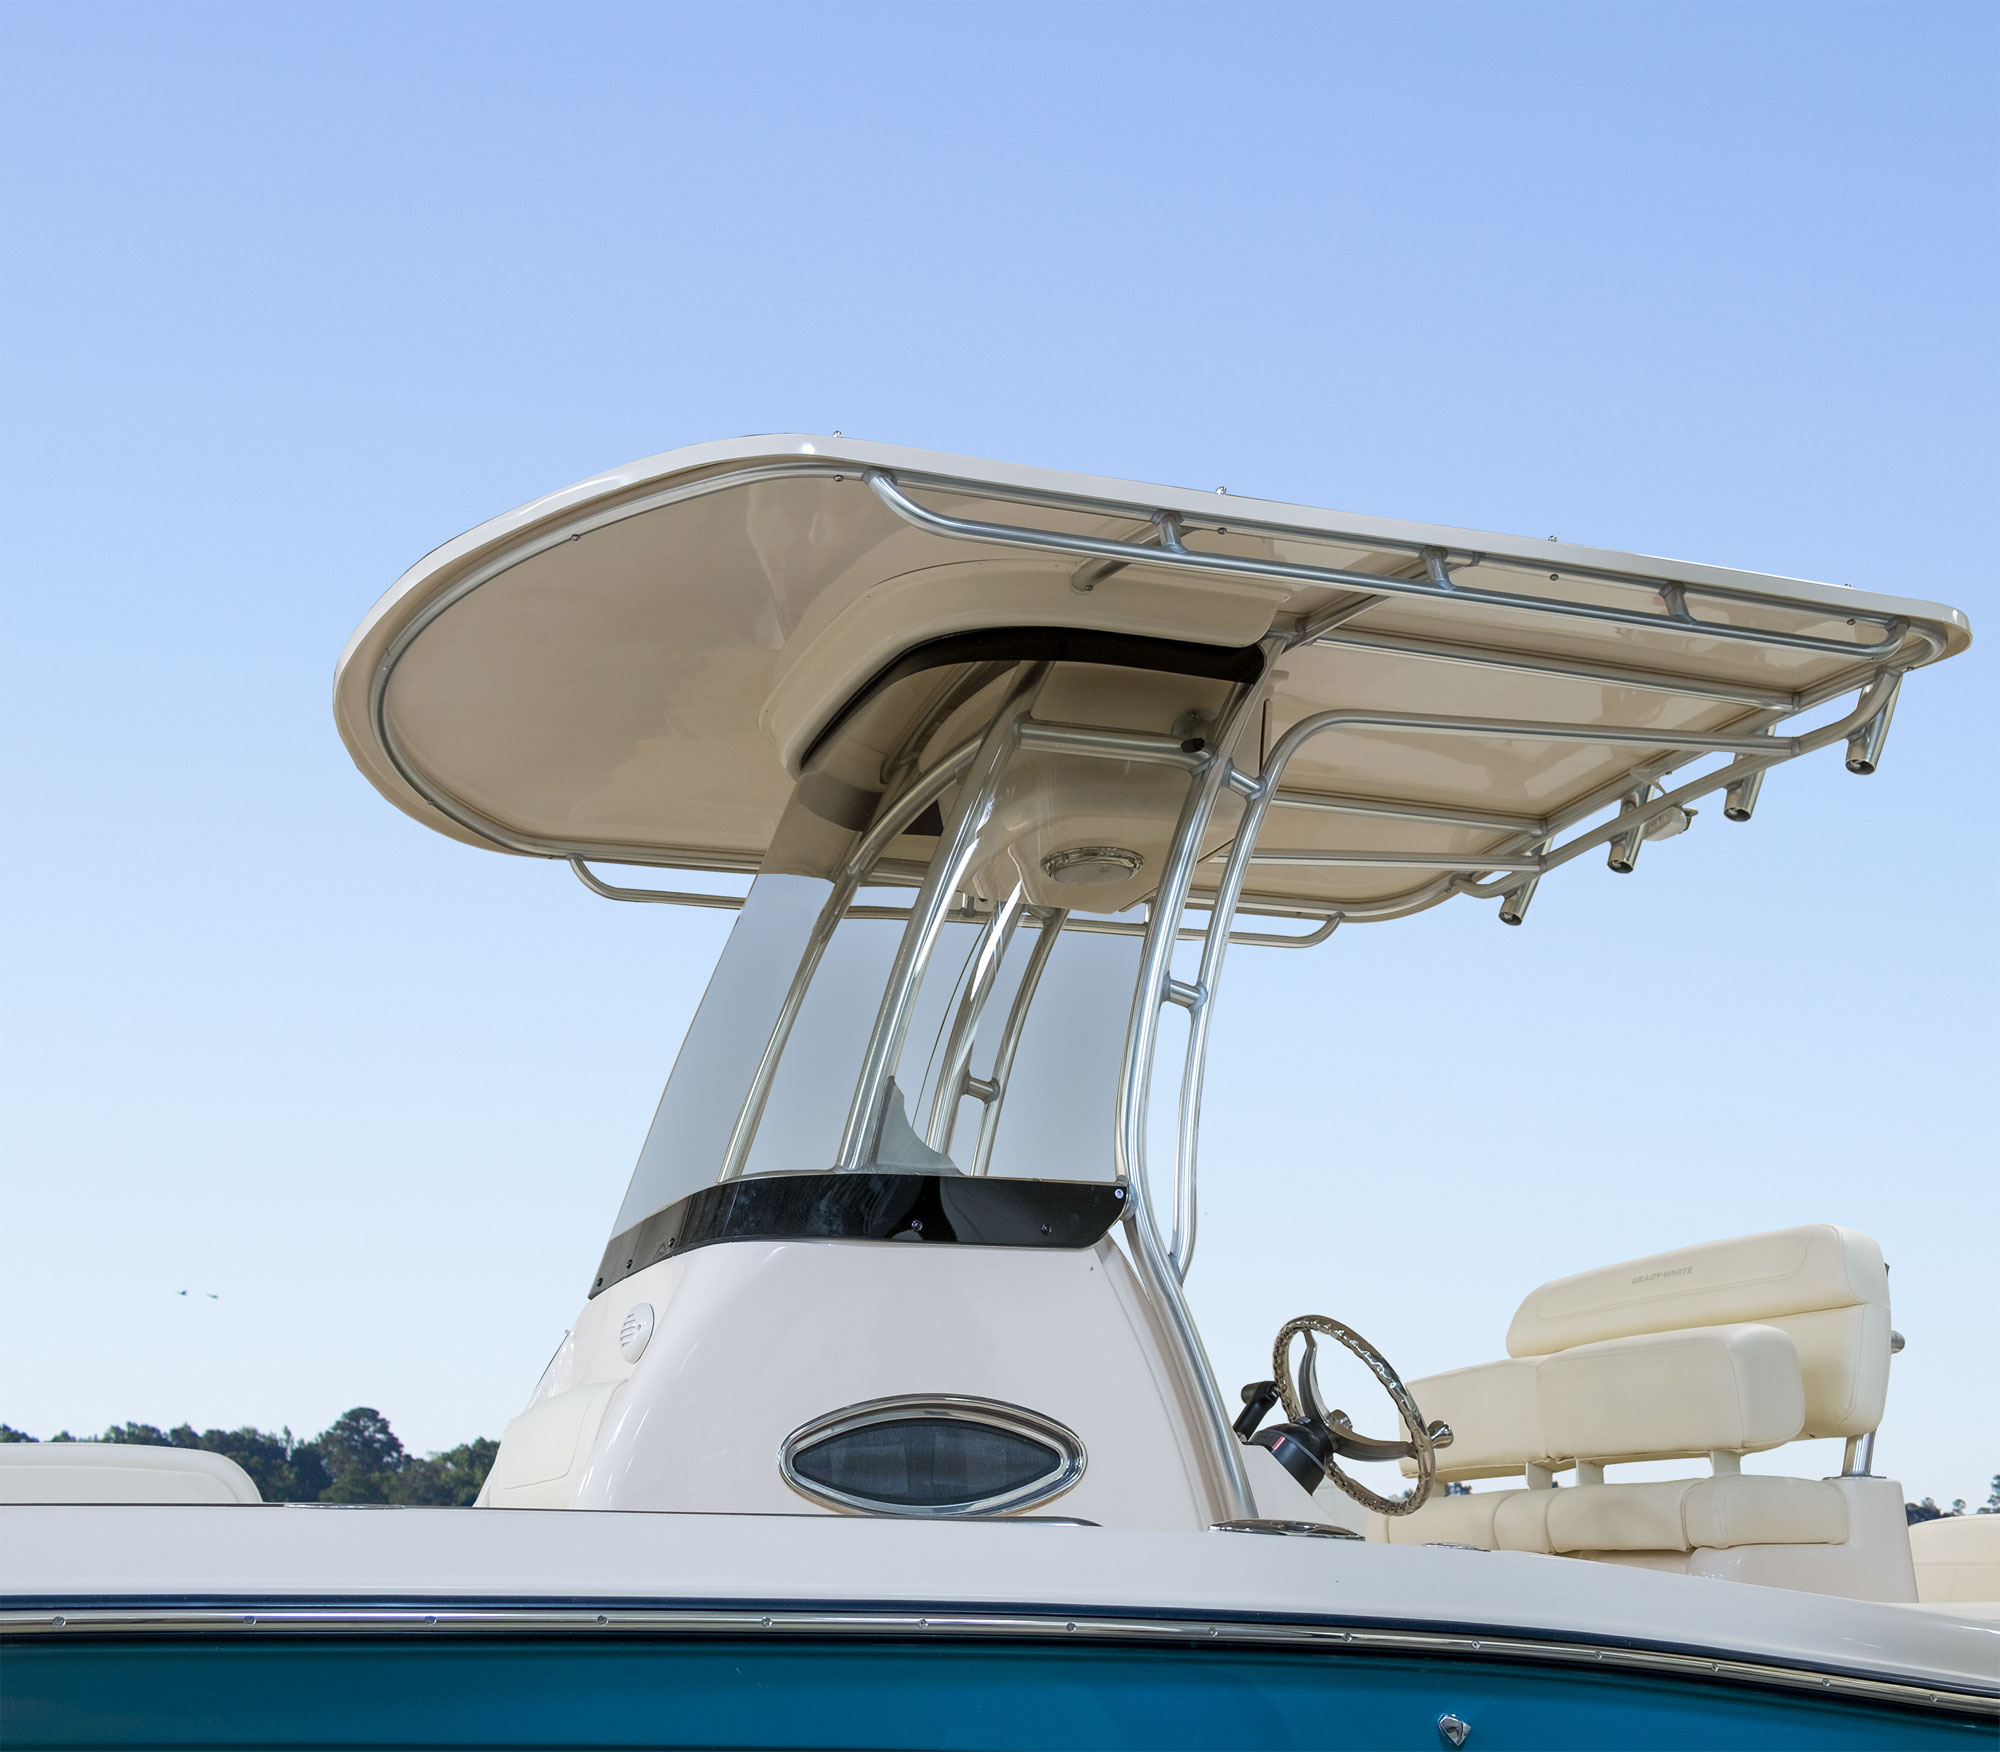 The Fisherman 216 offers an optional T-top.